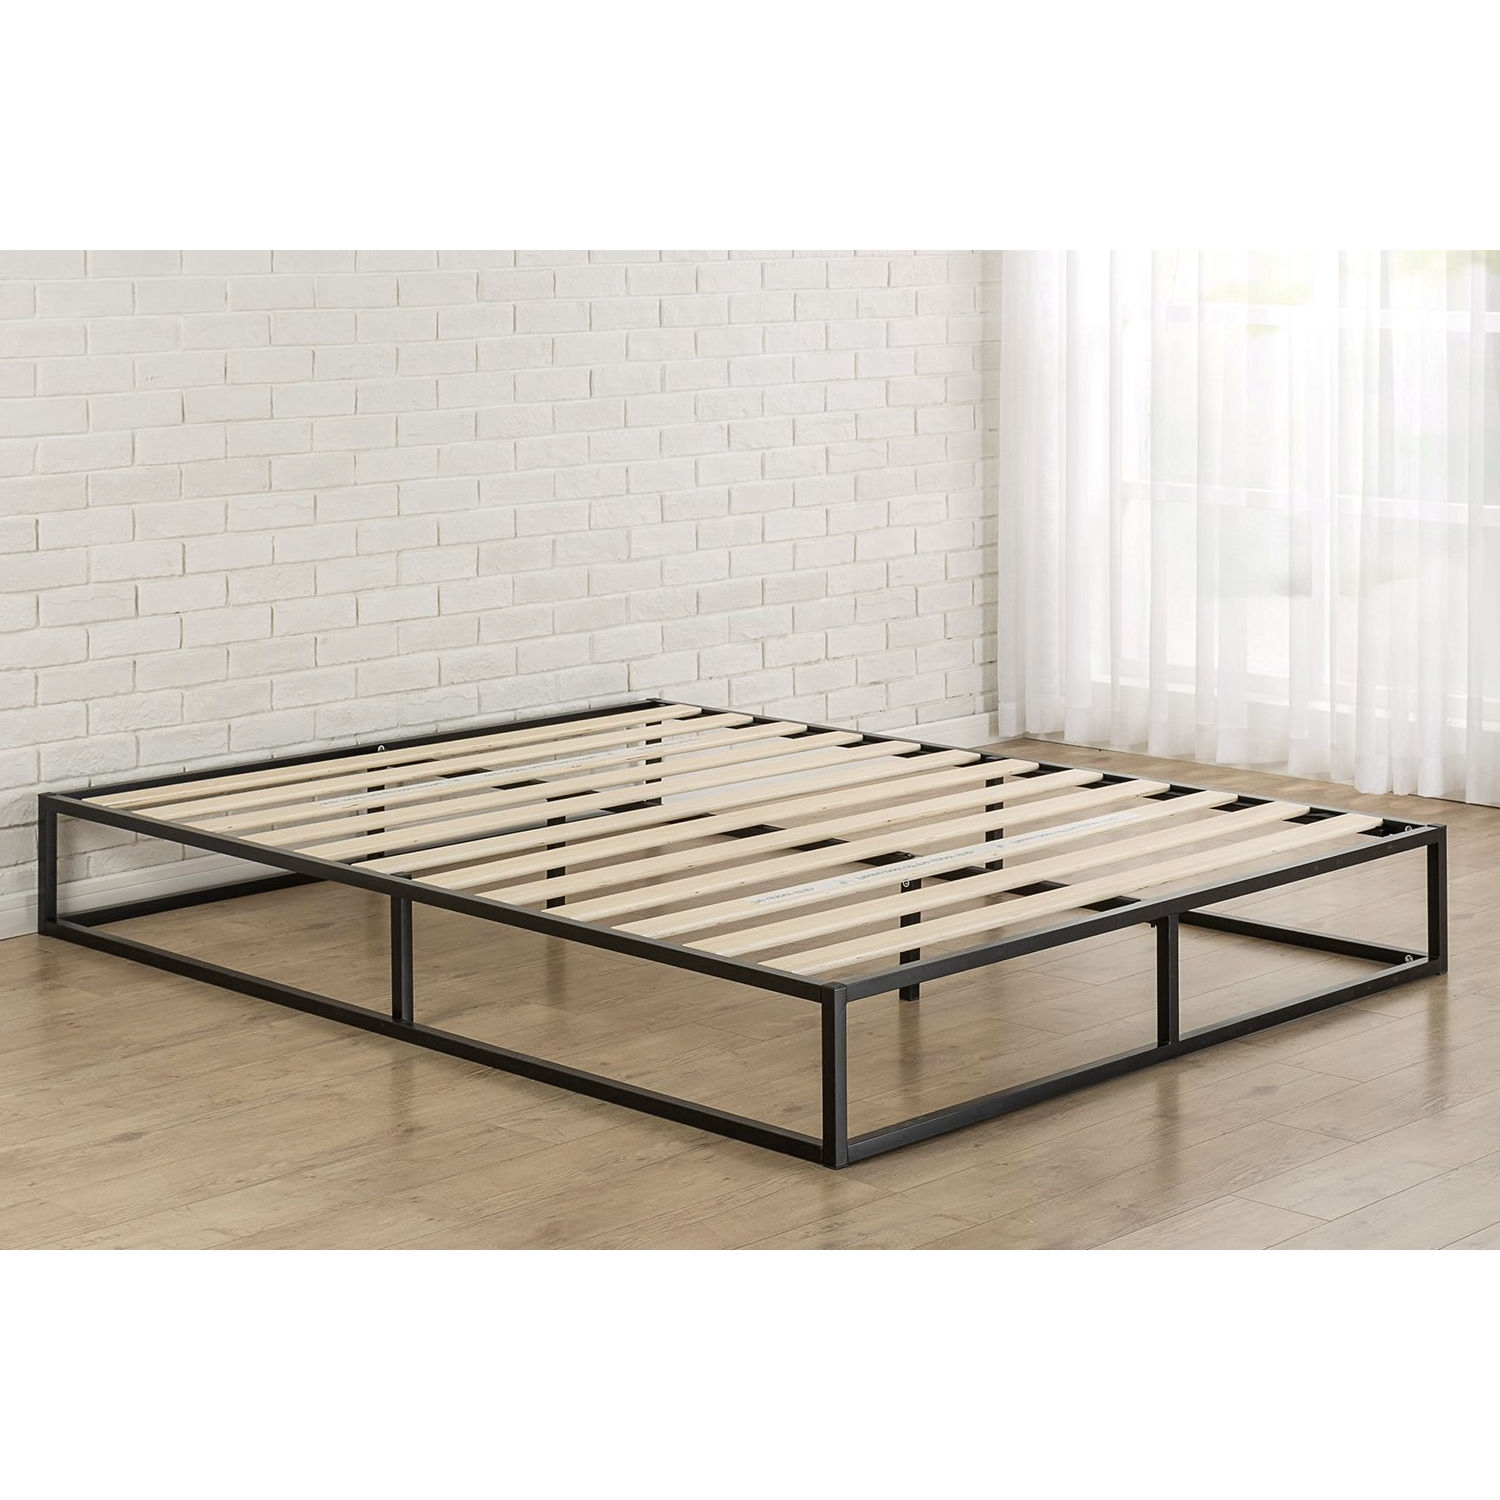 Twin Bed Frame Low Profile Twin Size 10 Inch Low Profile Modern Metal Platform Bed